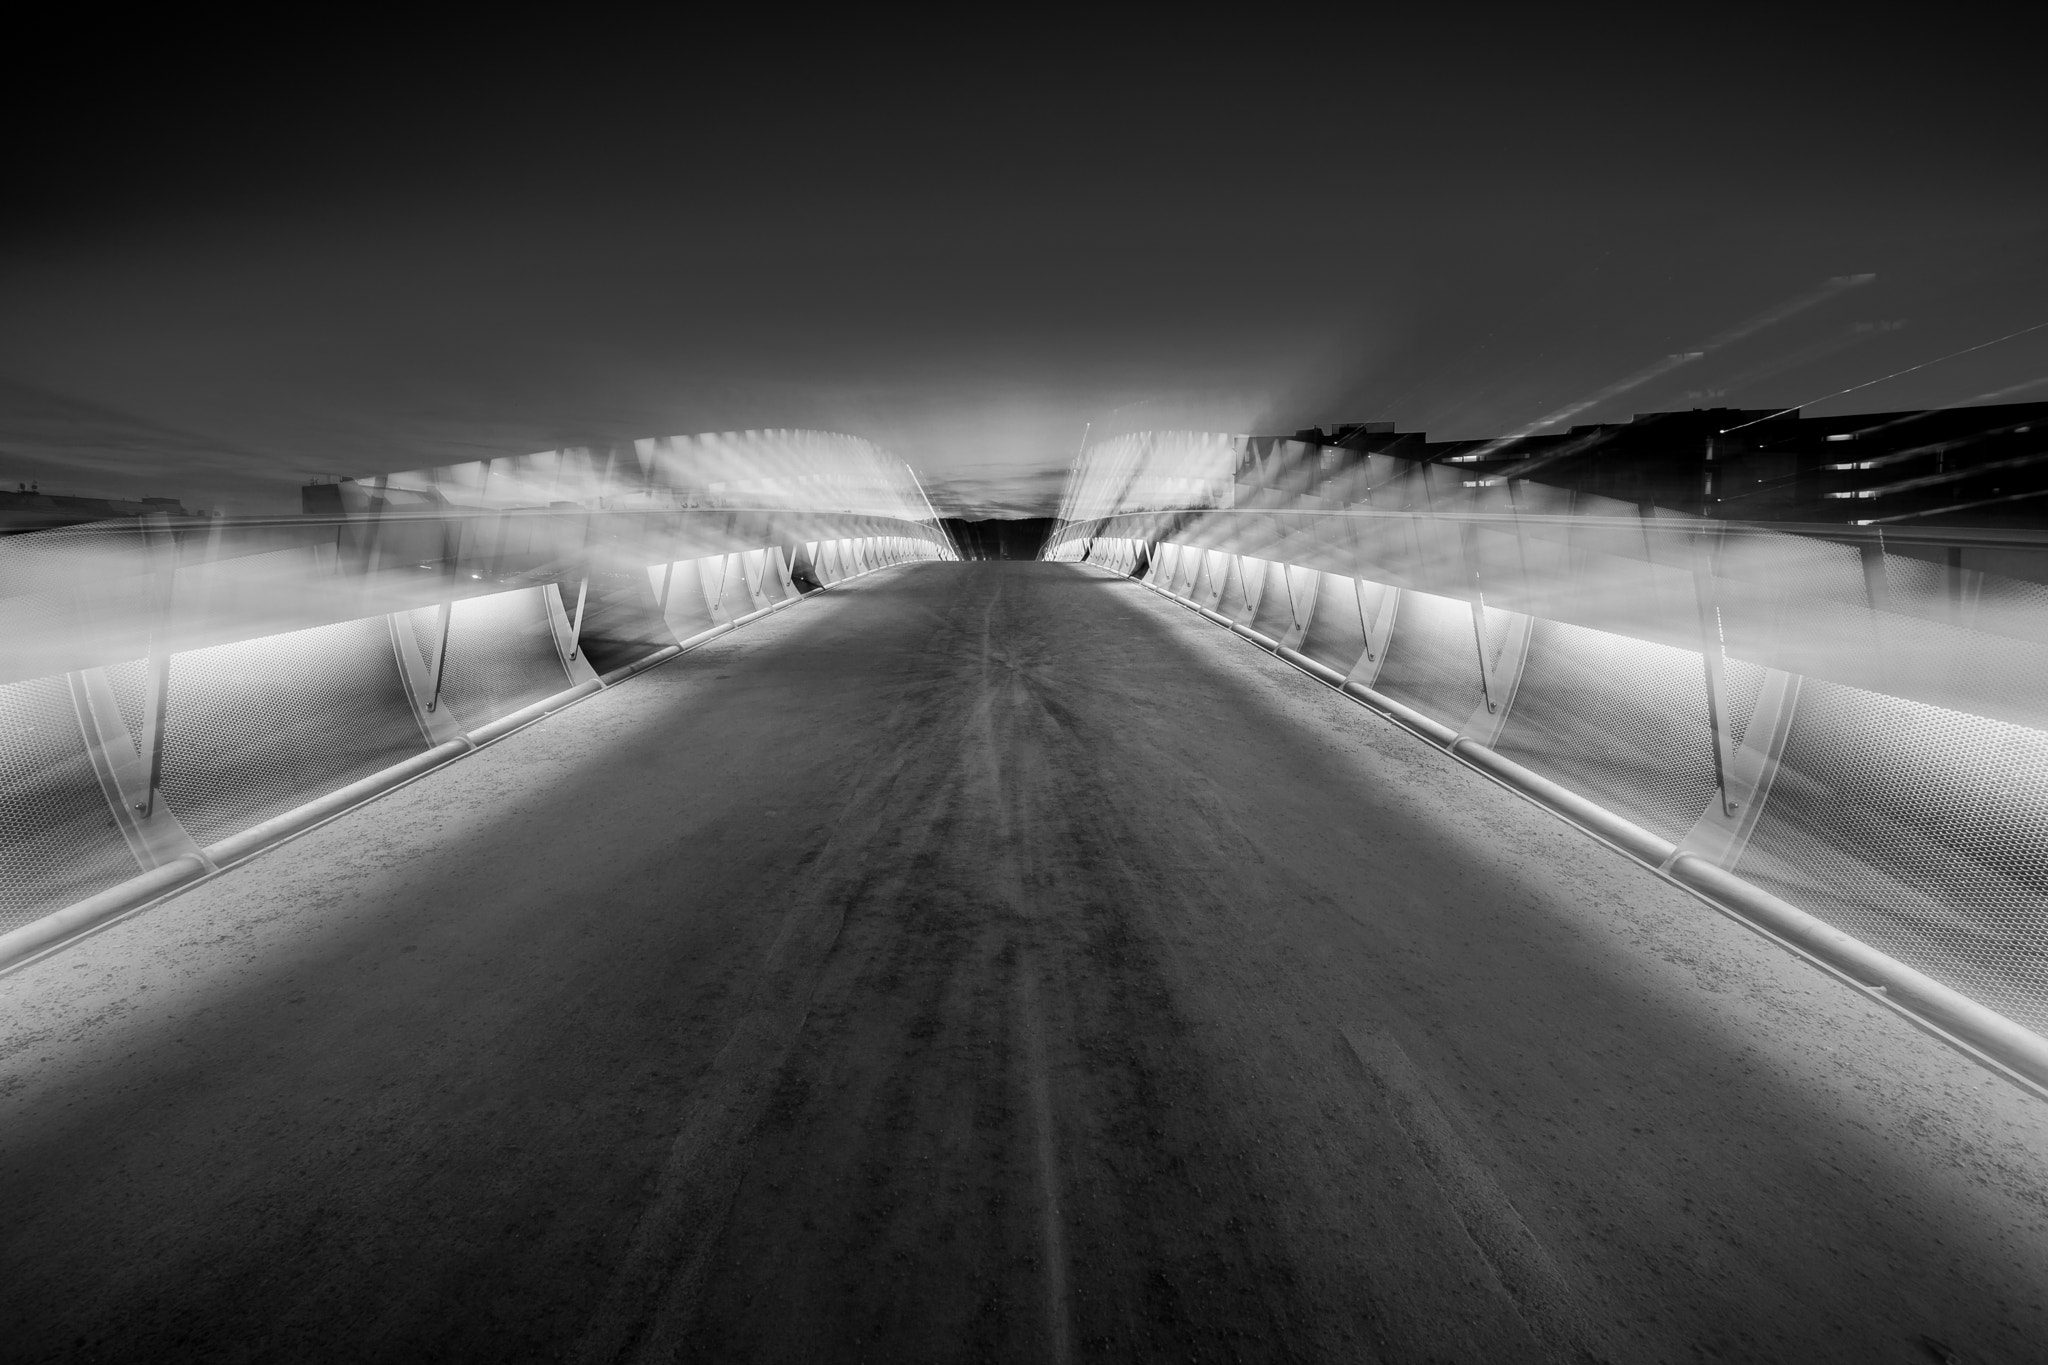 Photograph Bridge and light  by Bjarte Haugland on 500px